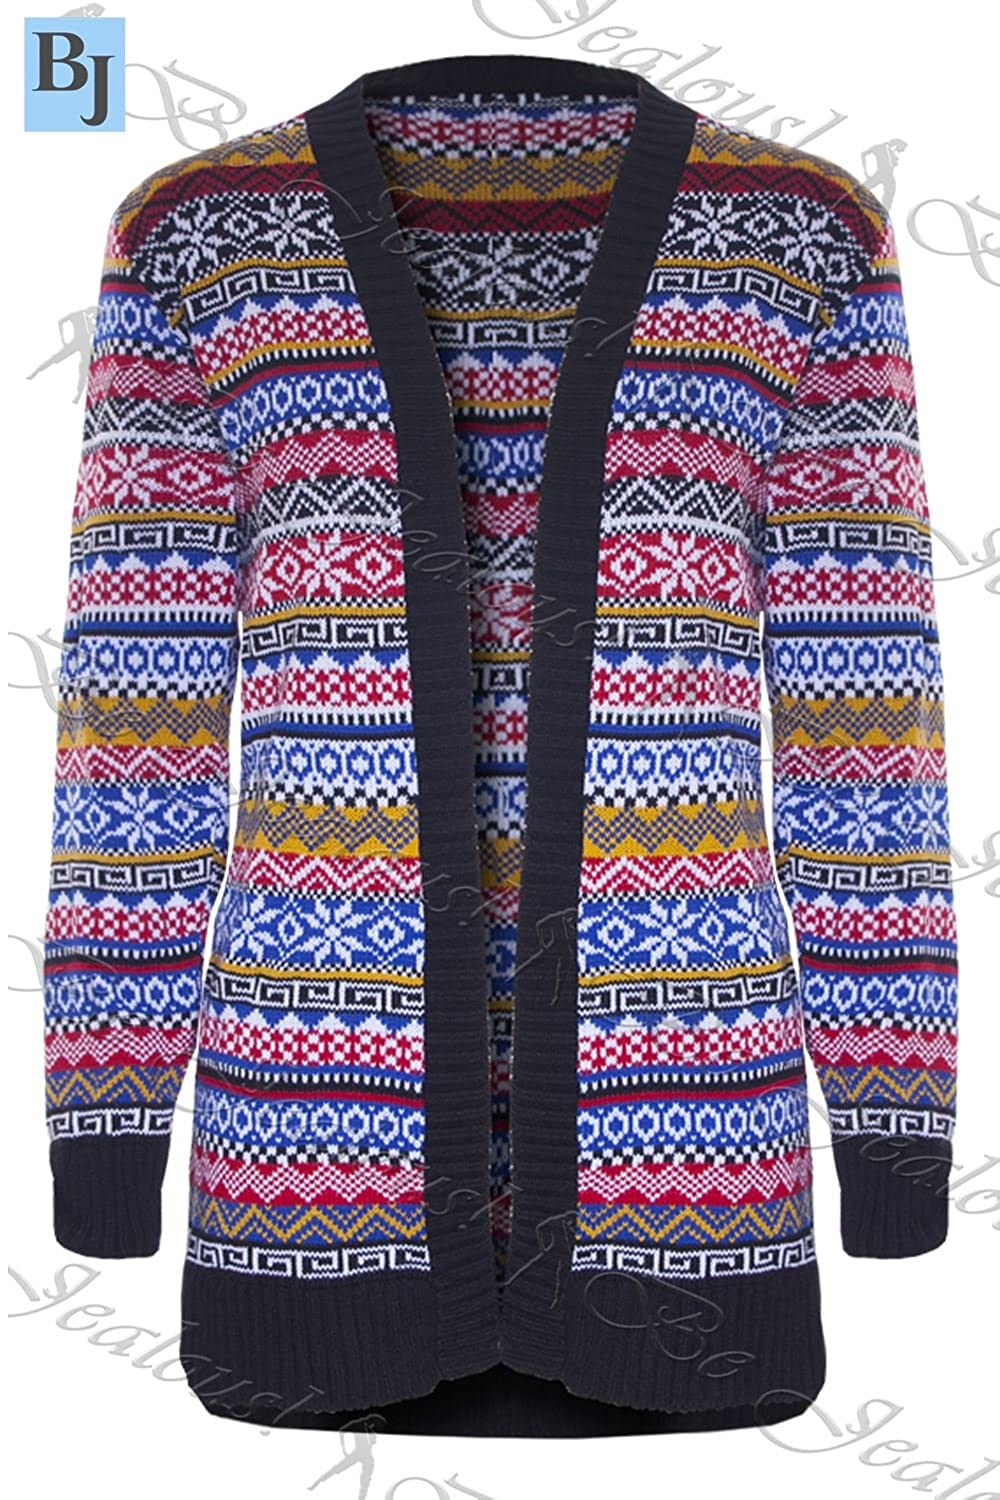 9ce7d075eb Womens Ladies Christmas Aztec Open Front Knitted Sweater Boyfriend Cardigan  Top  Amazon.co.uk  Clothing